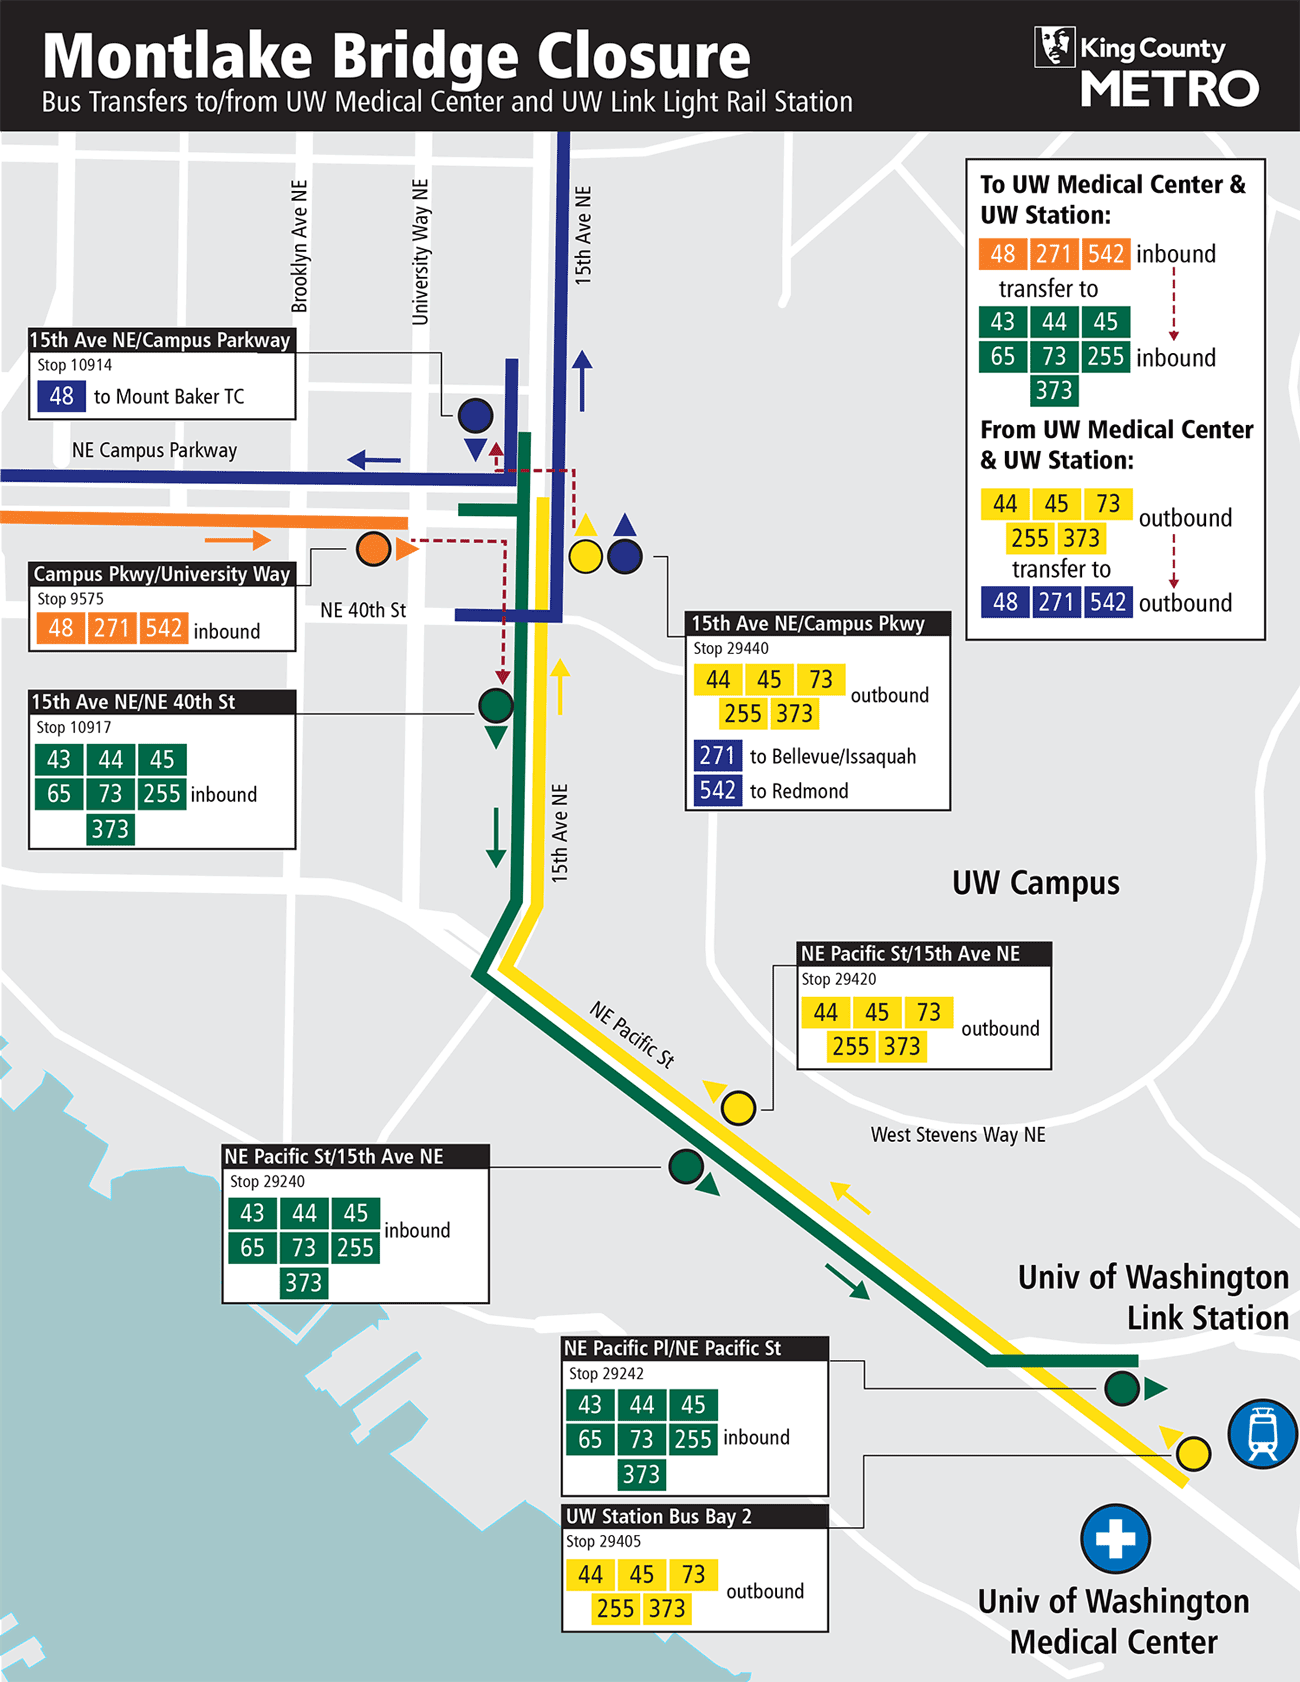 King County Metro reroute map showing bus transfers to/from the UW Medical Center and UW Link Light Rail station